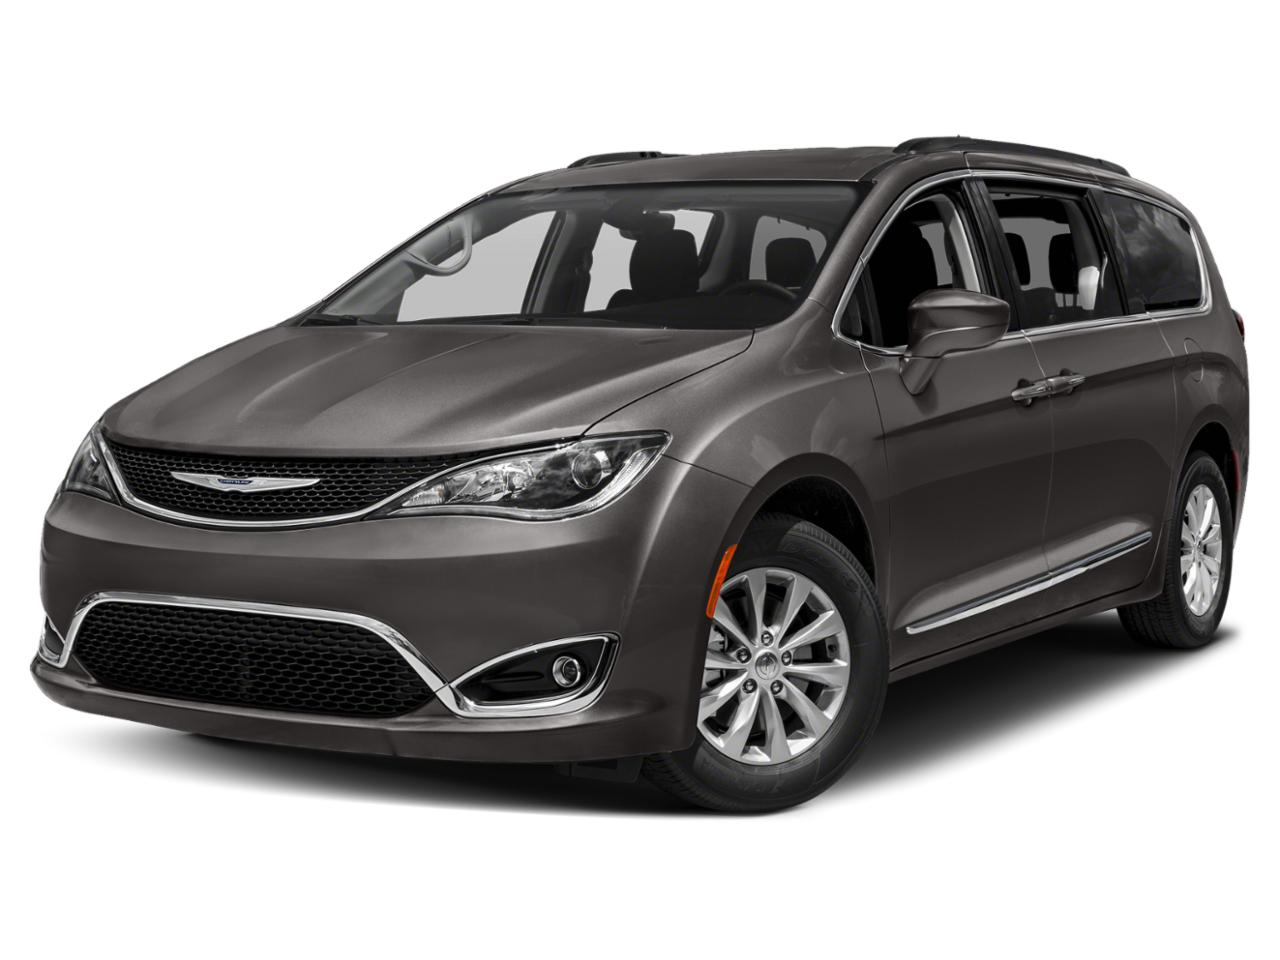 2019 Chrysler Pacifica Vehicle Photo in Prescott, AZ 86305